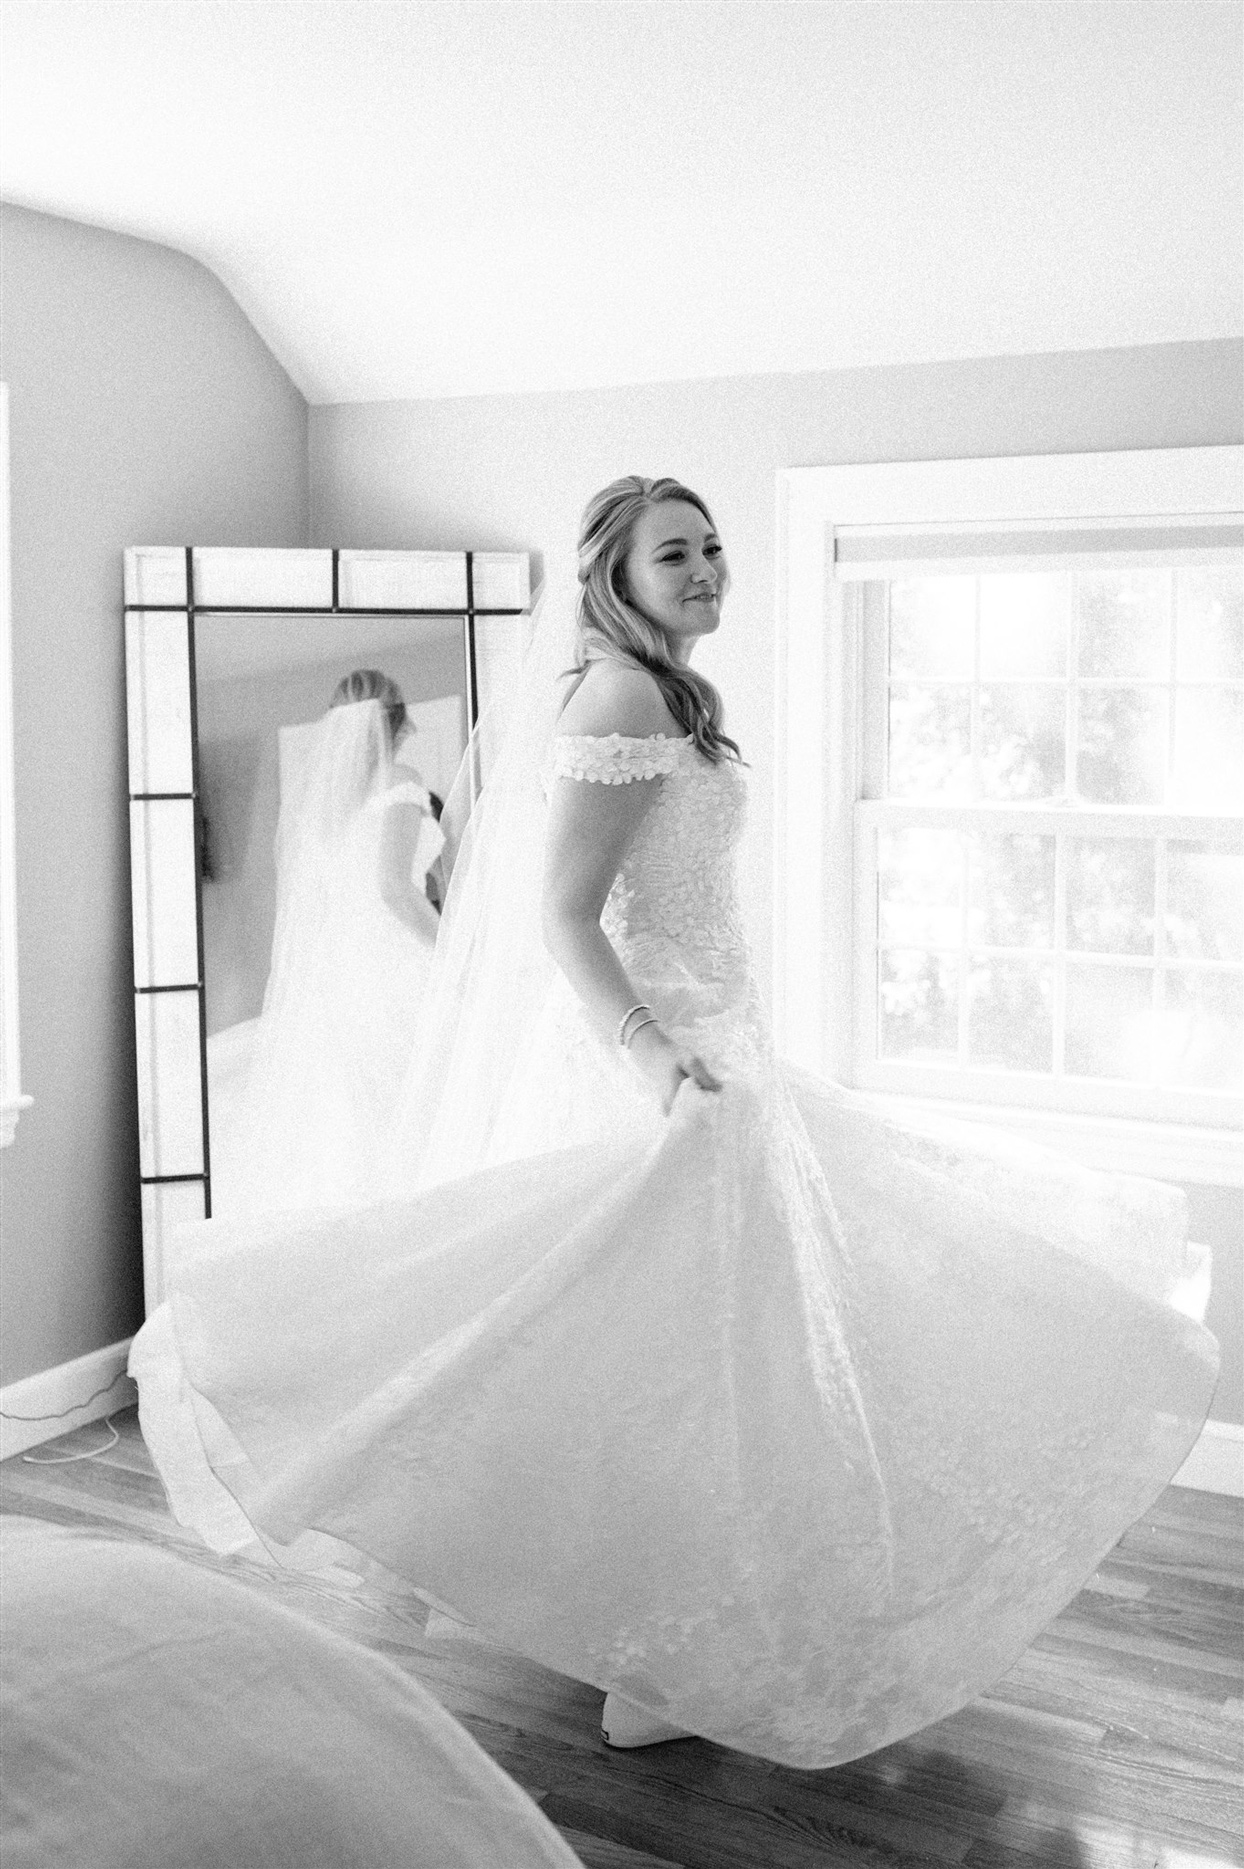 Bride spinning in wedding dress while getting ready